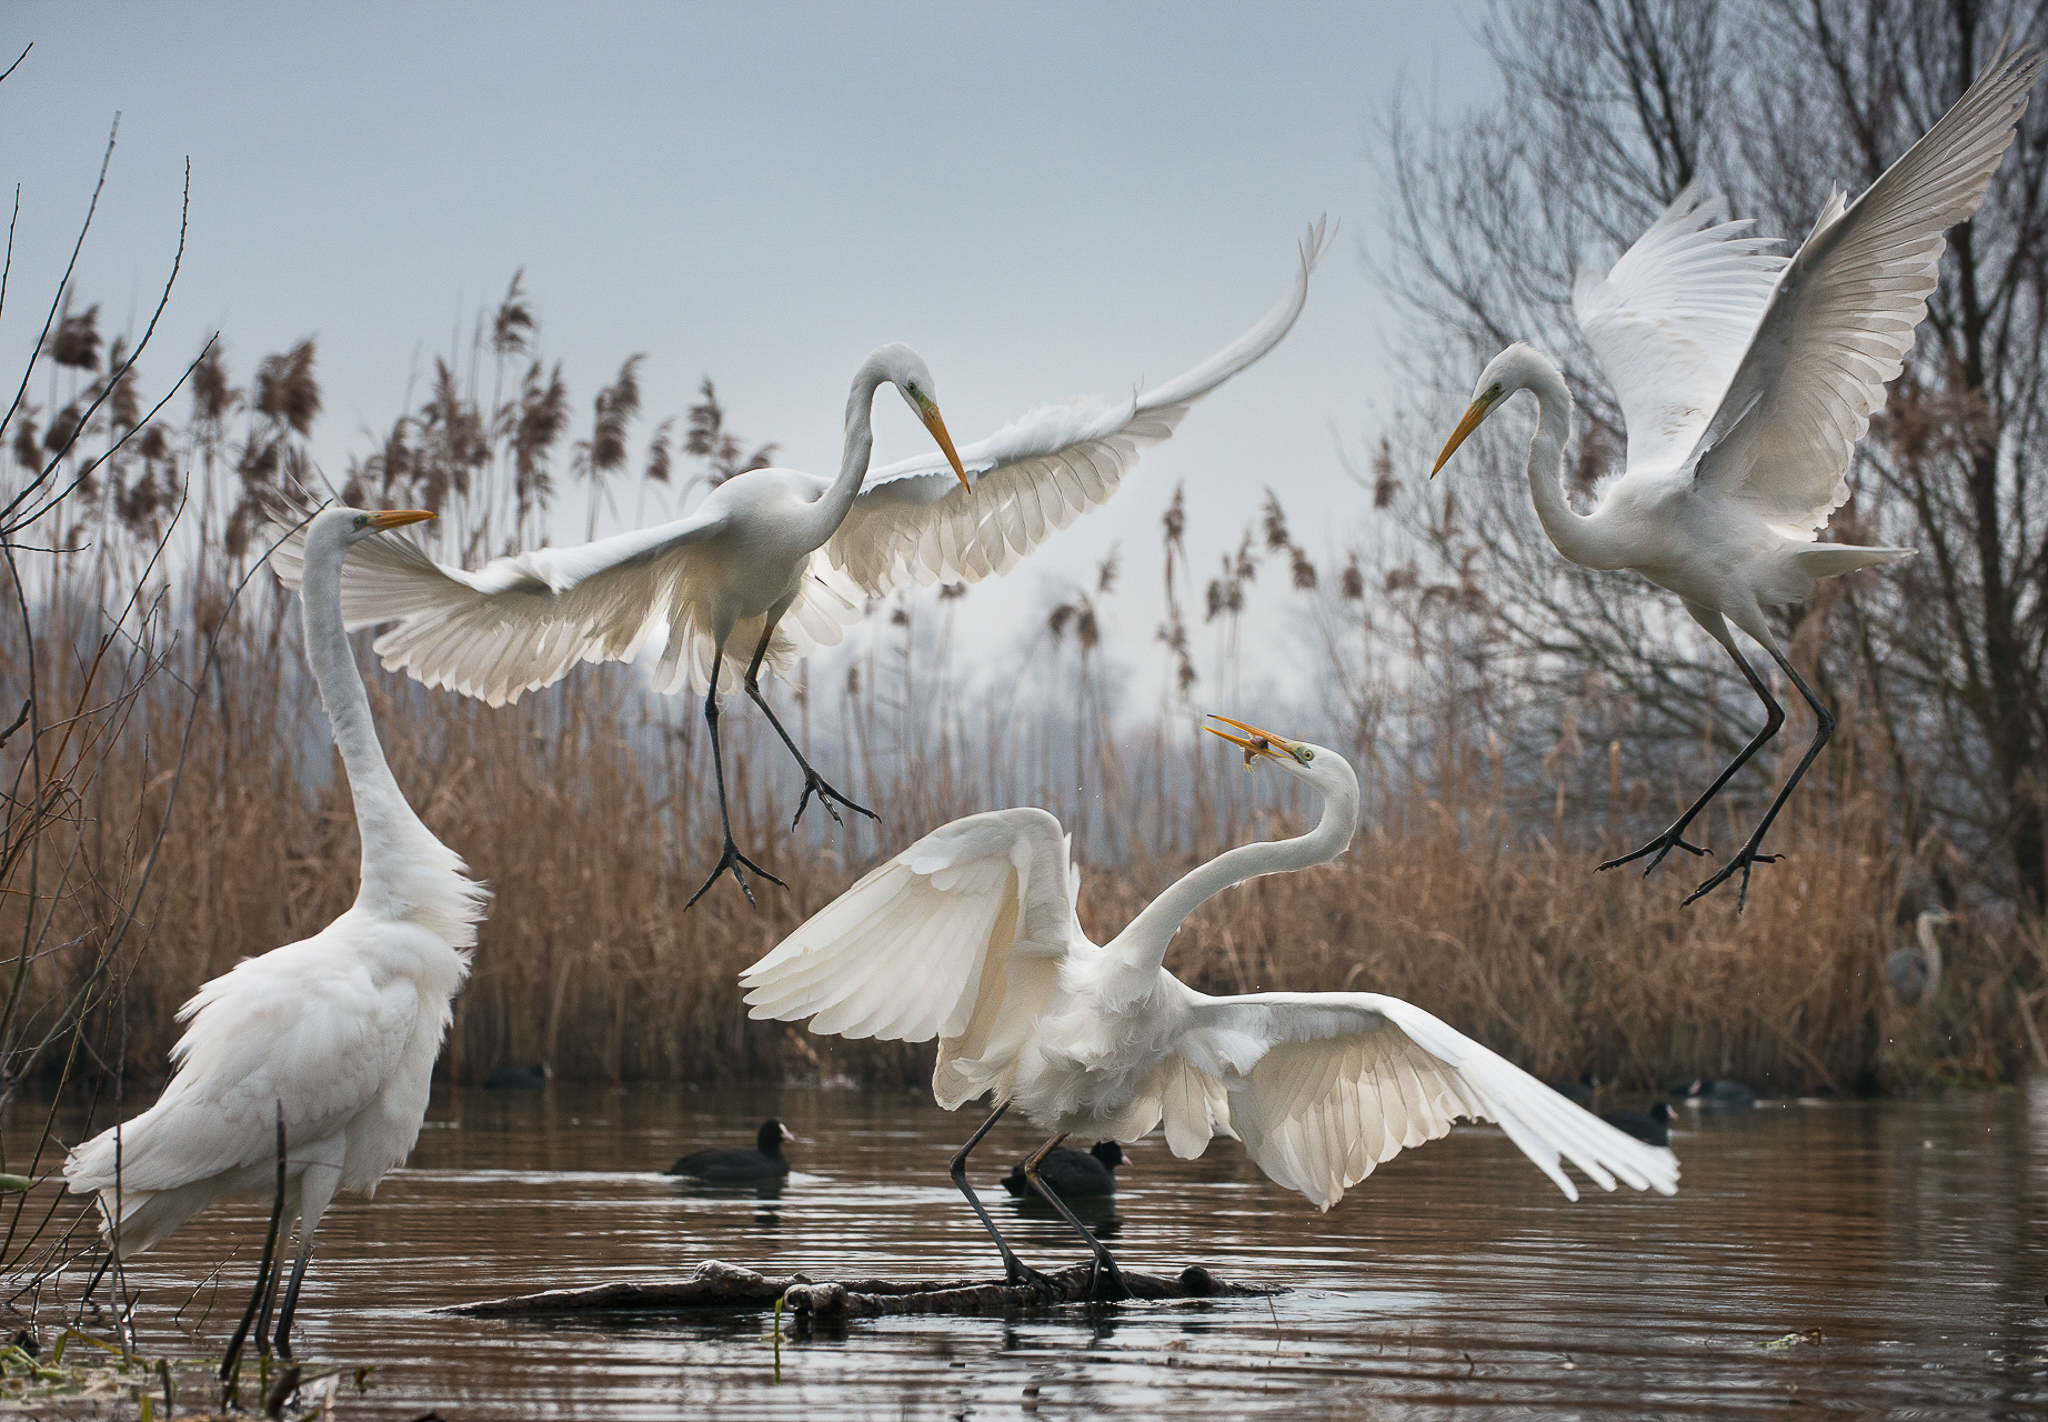 Great egrets, photographed here in Hungary's Balaton Uplands National Park, are easy to recognize because of their broad white wings and slow, sweeping flight.